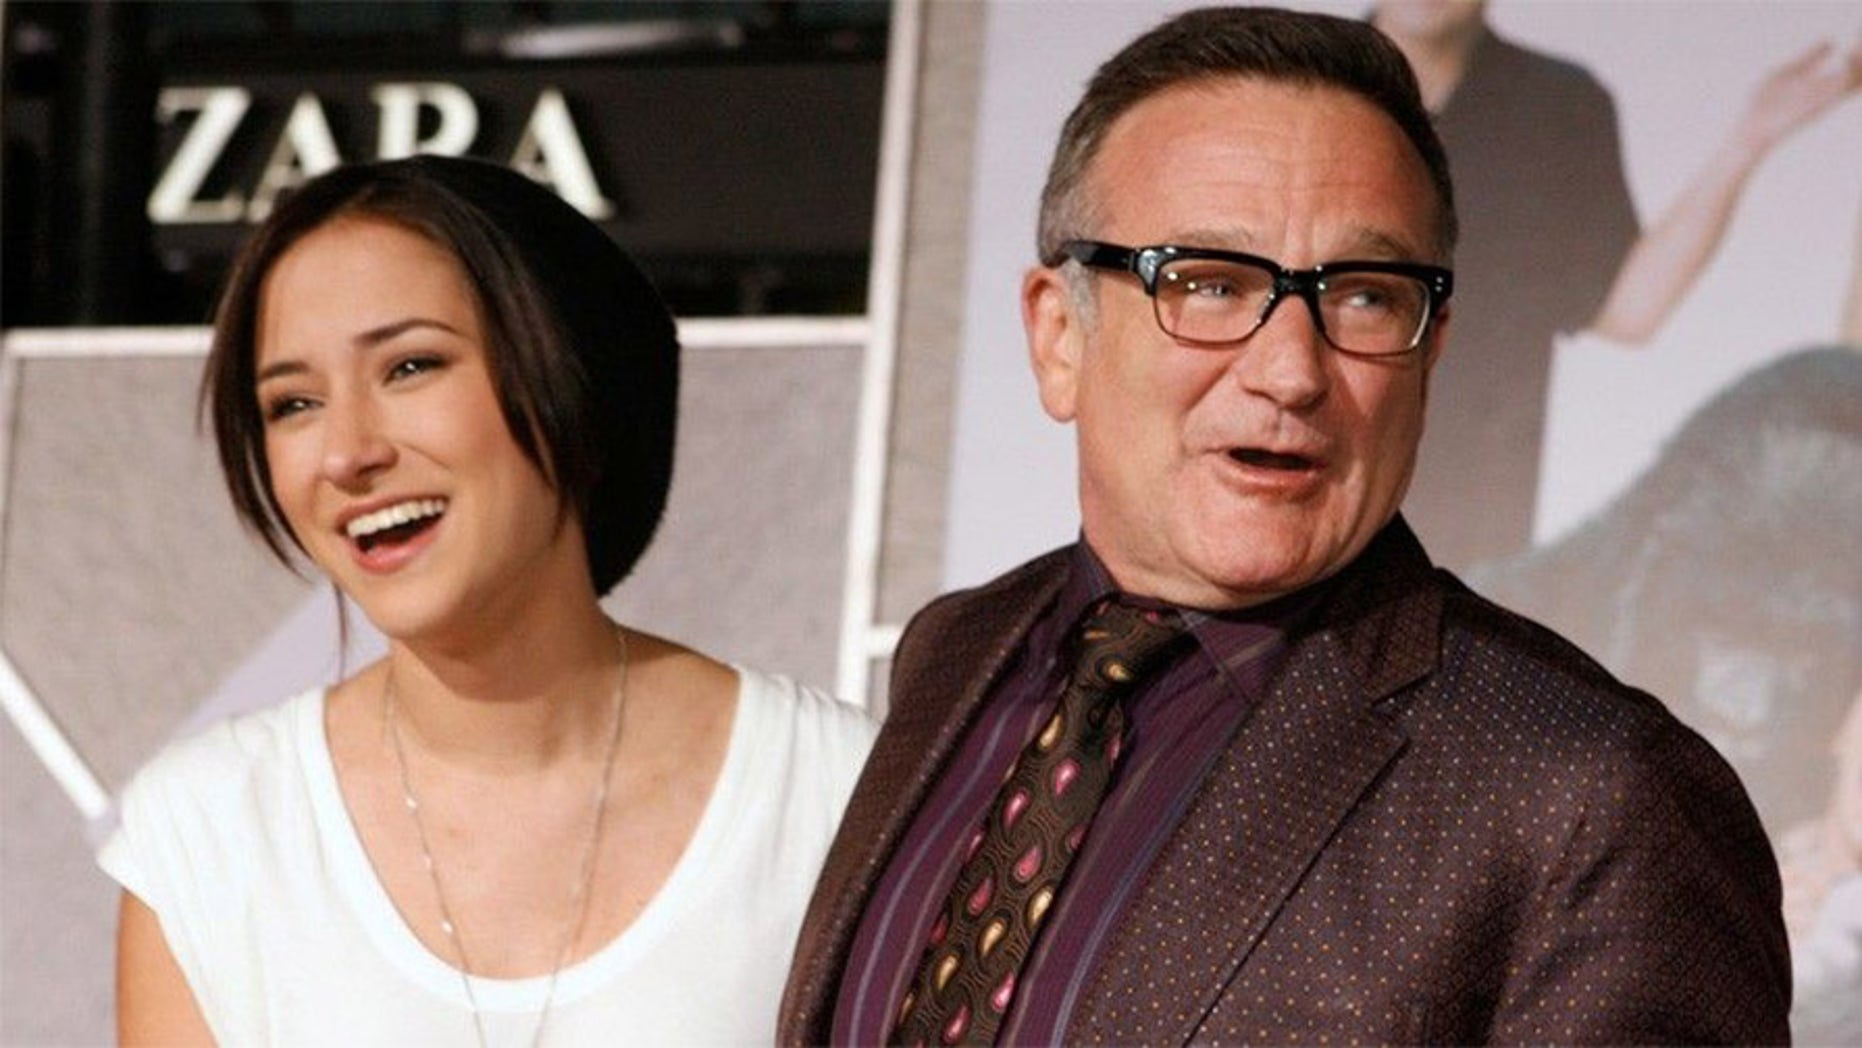 Zelda Williams (left) and her late father Robin Williams.